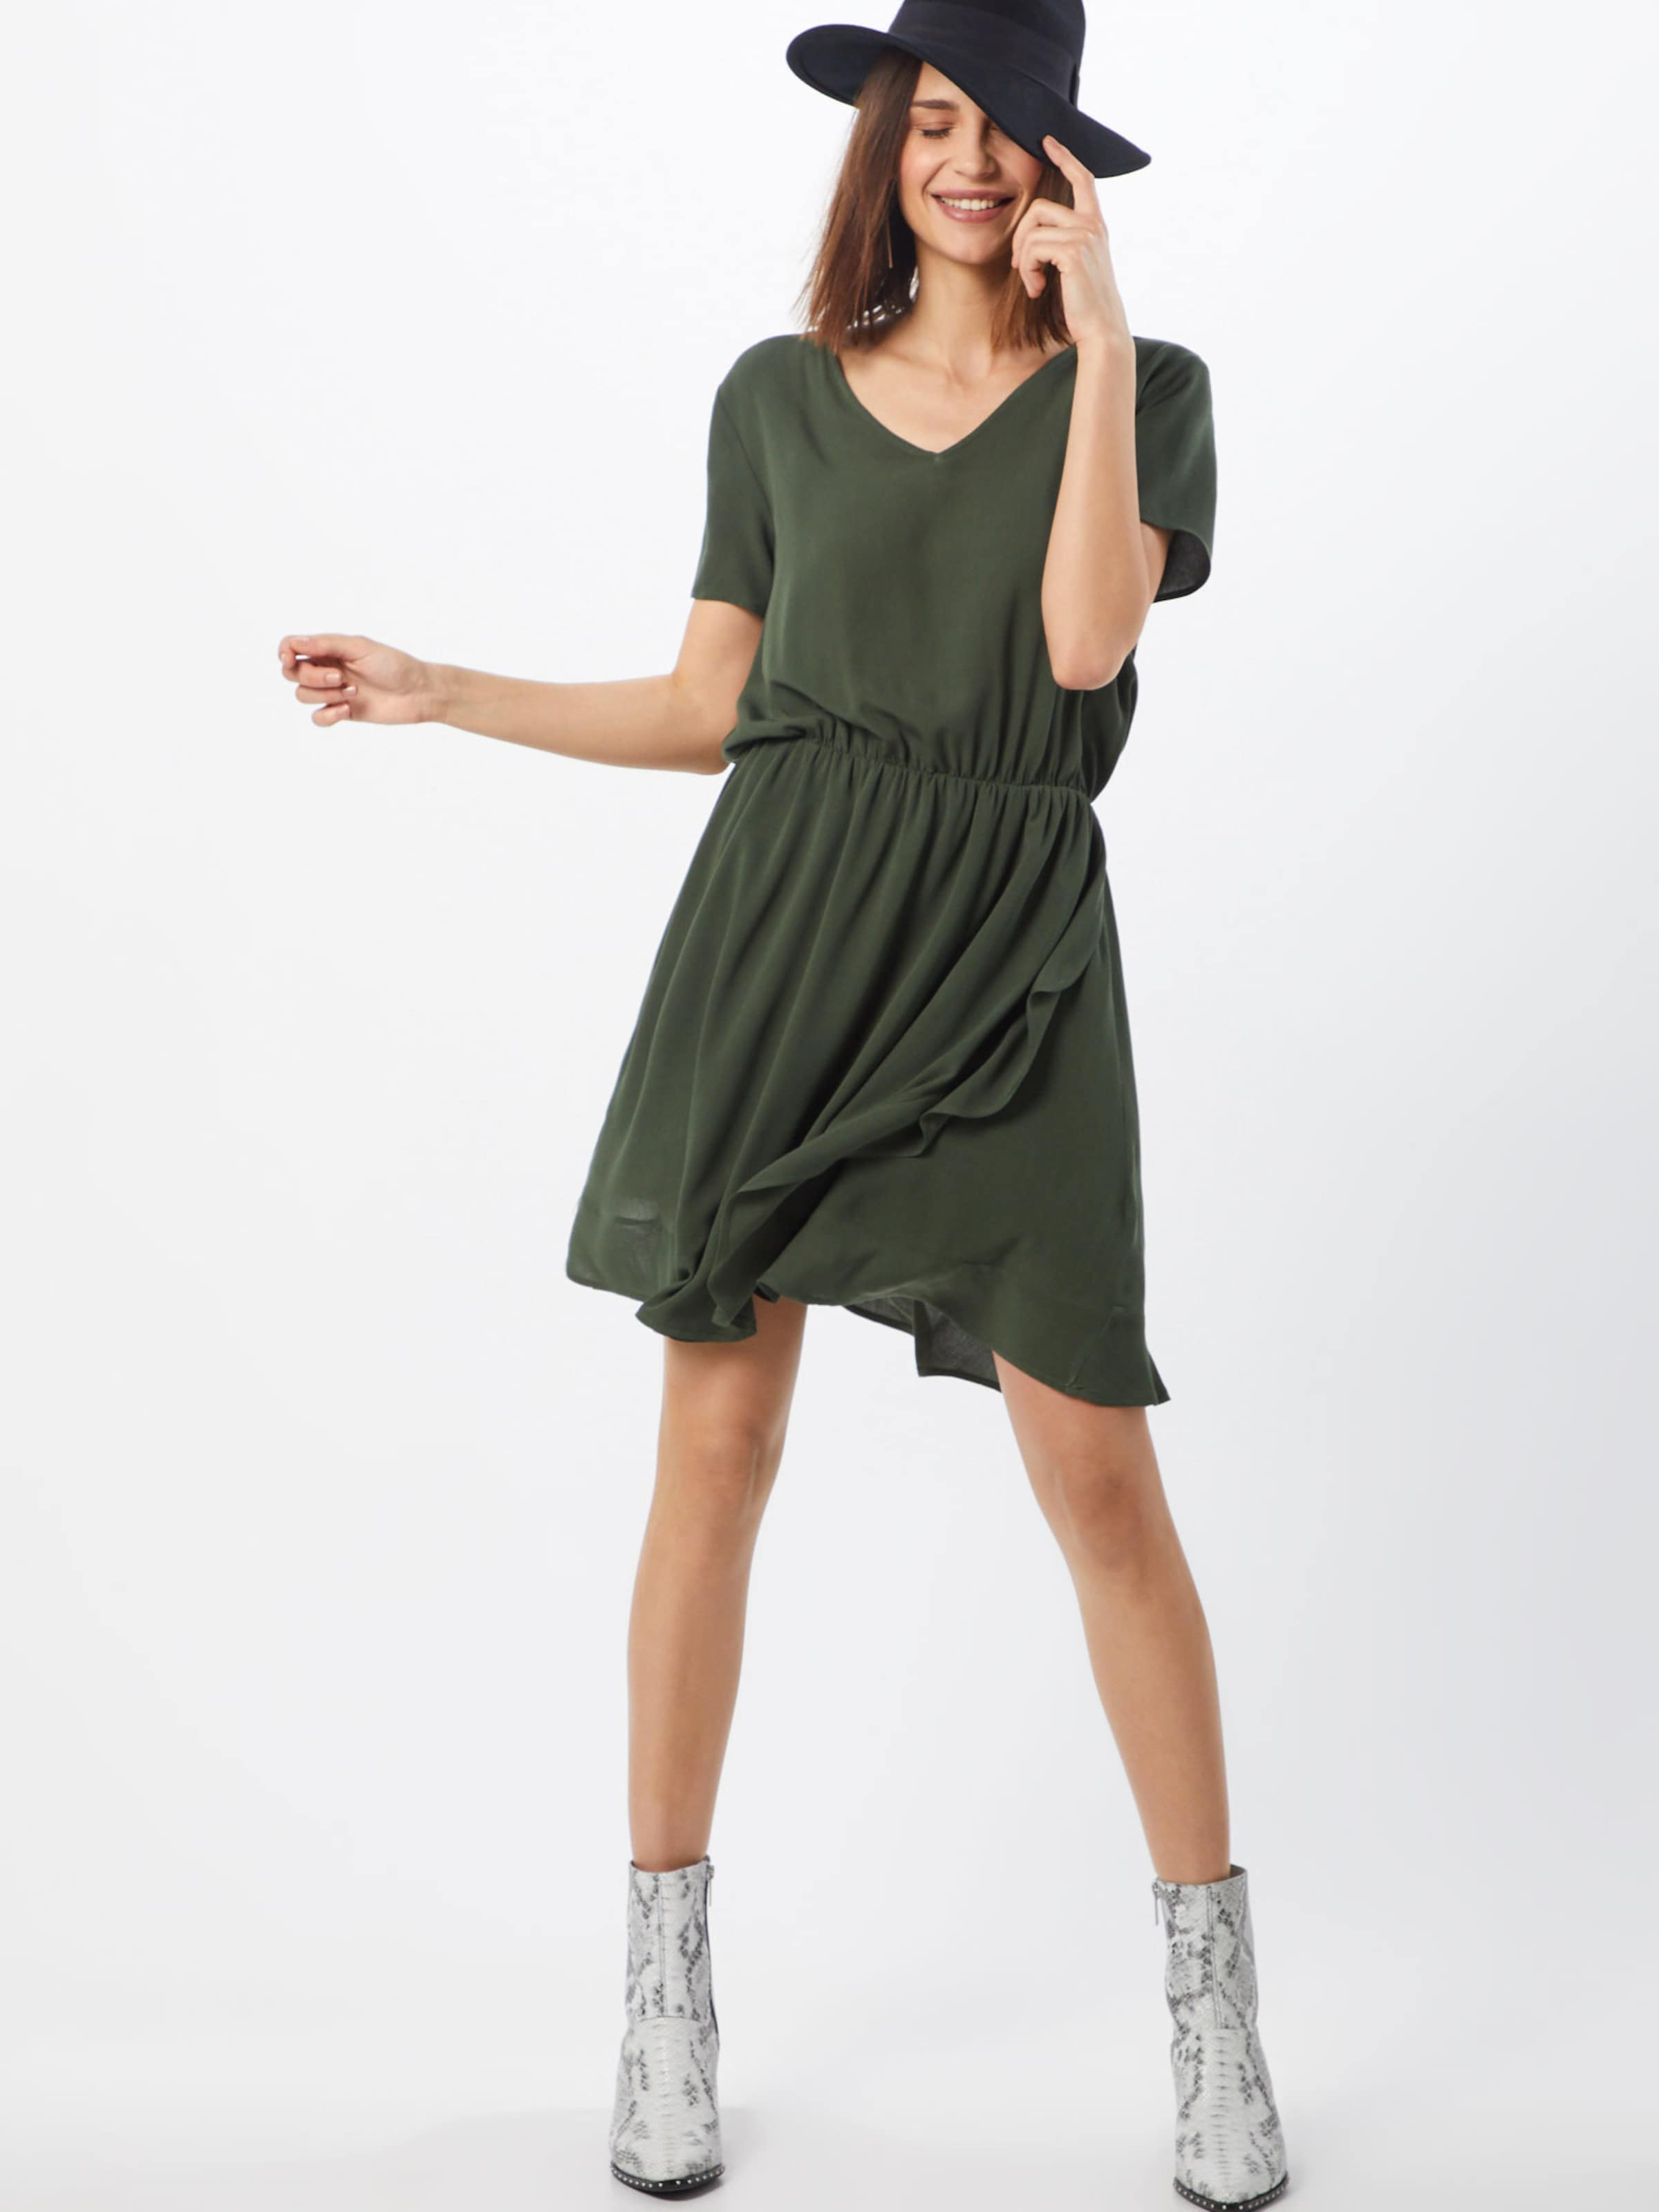 Robe Vert Object 'bay Tribbiani Dress' En N8wXZnOPk0